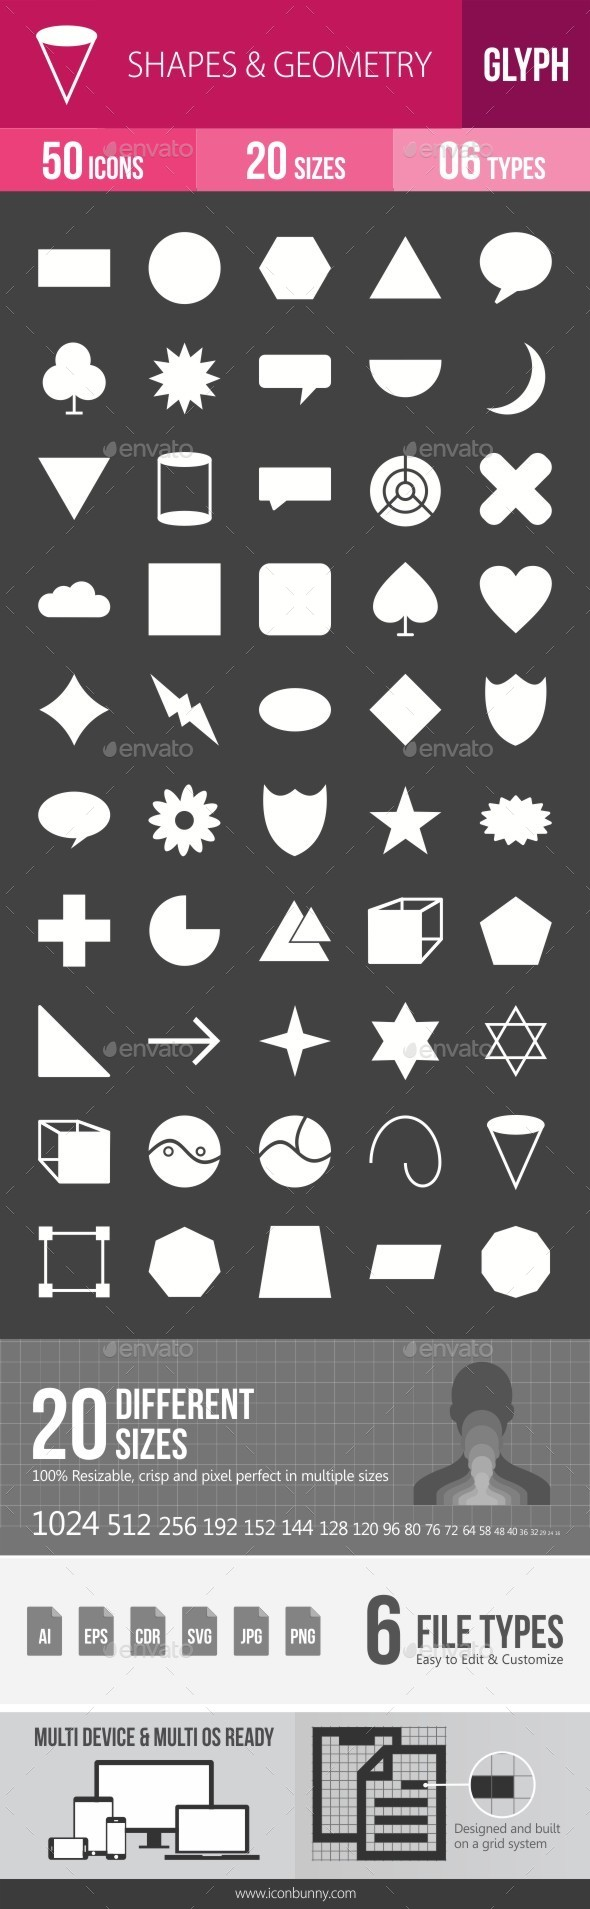 Shapes & Geometry Glyph Inverted Icons - Icons